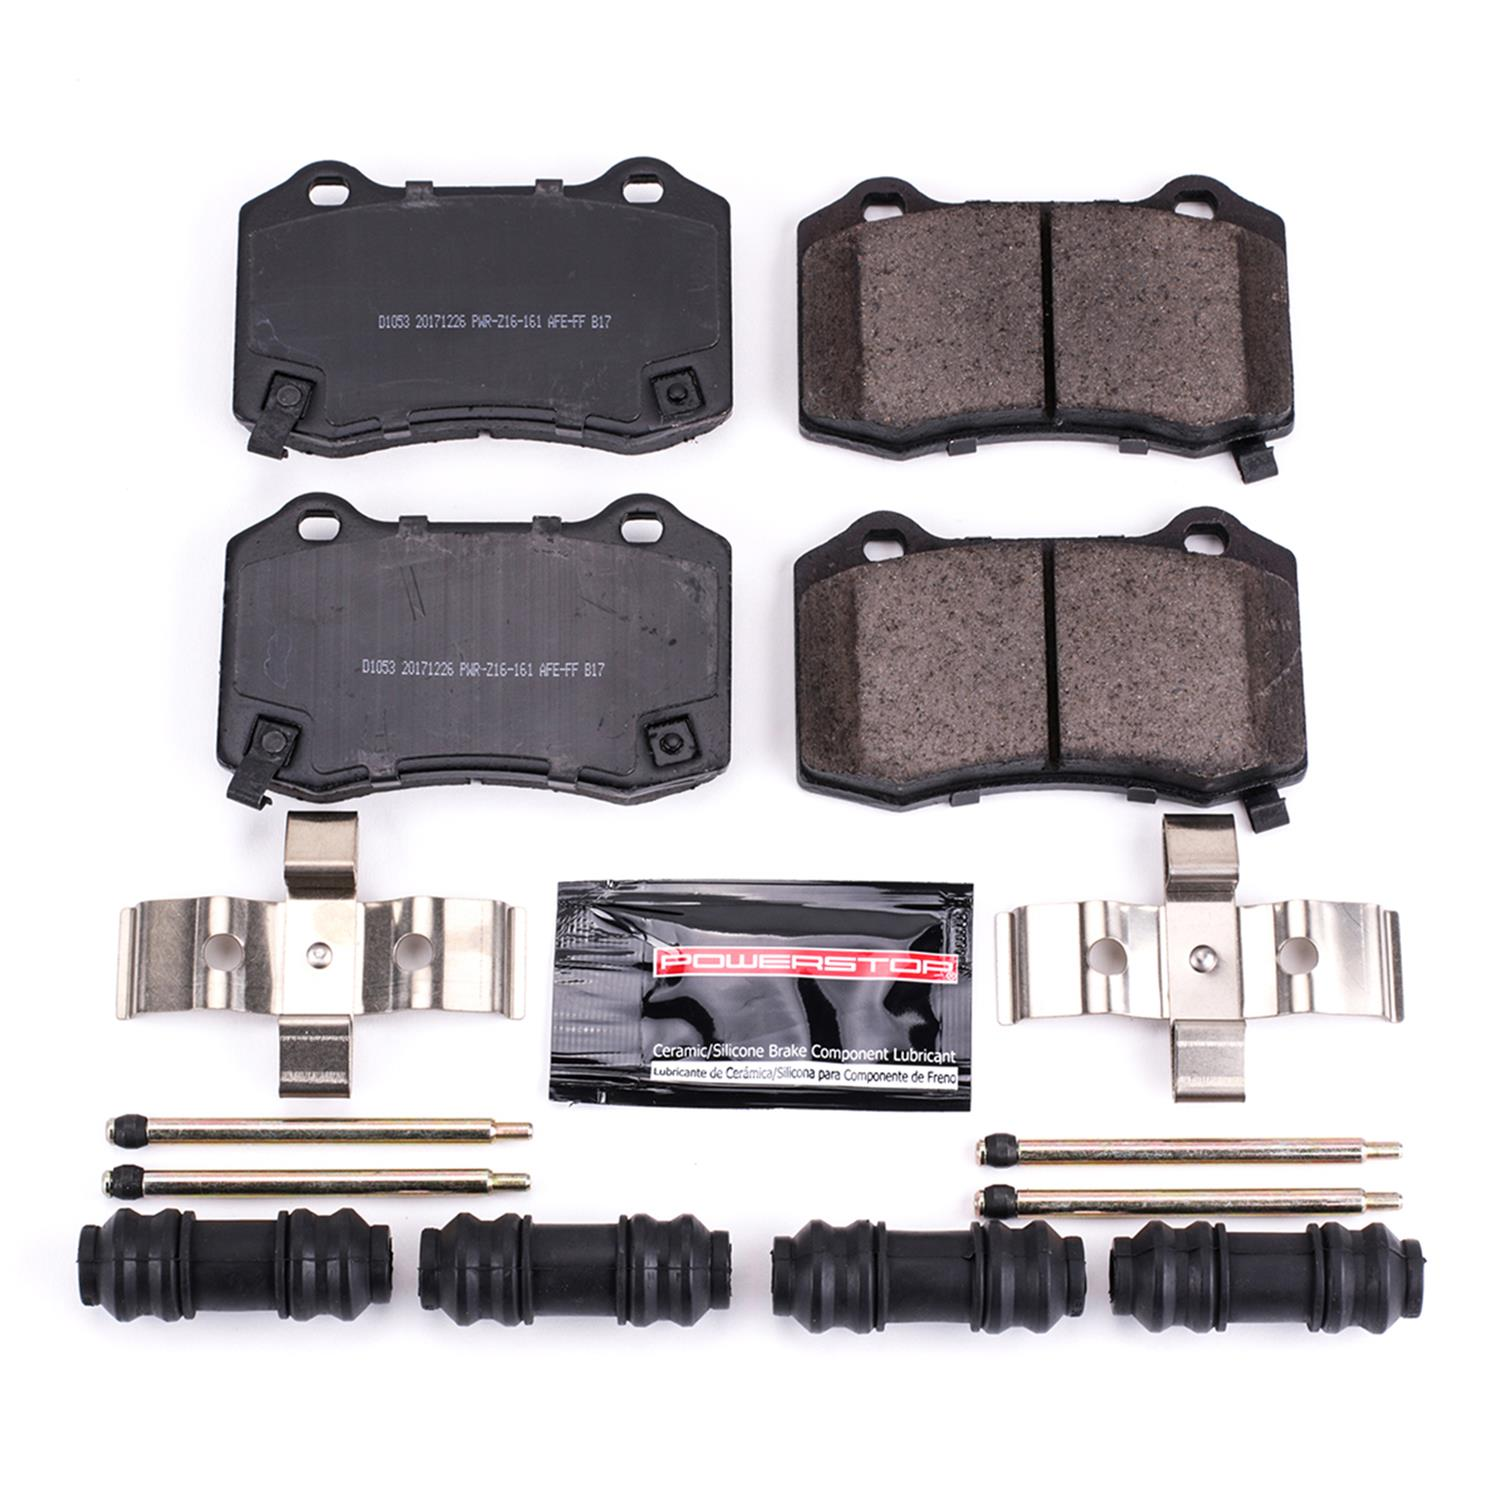 Z23 Evolution Front Carbon-Fiber Ceramic Brake Pads Power Stop Z23-6006